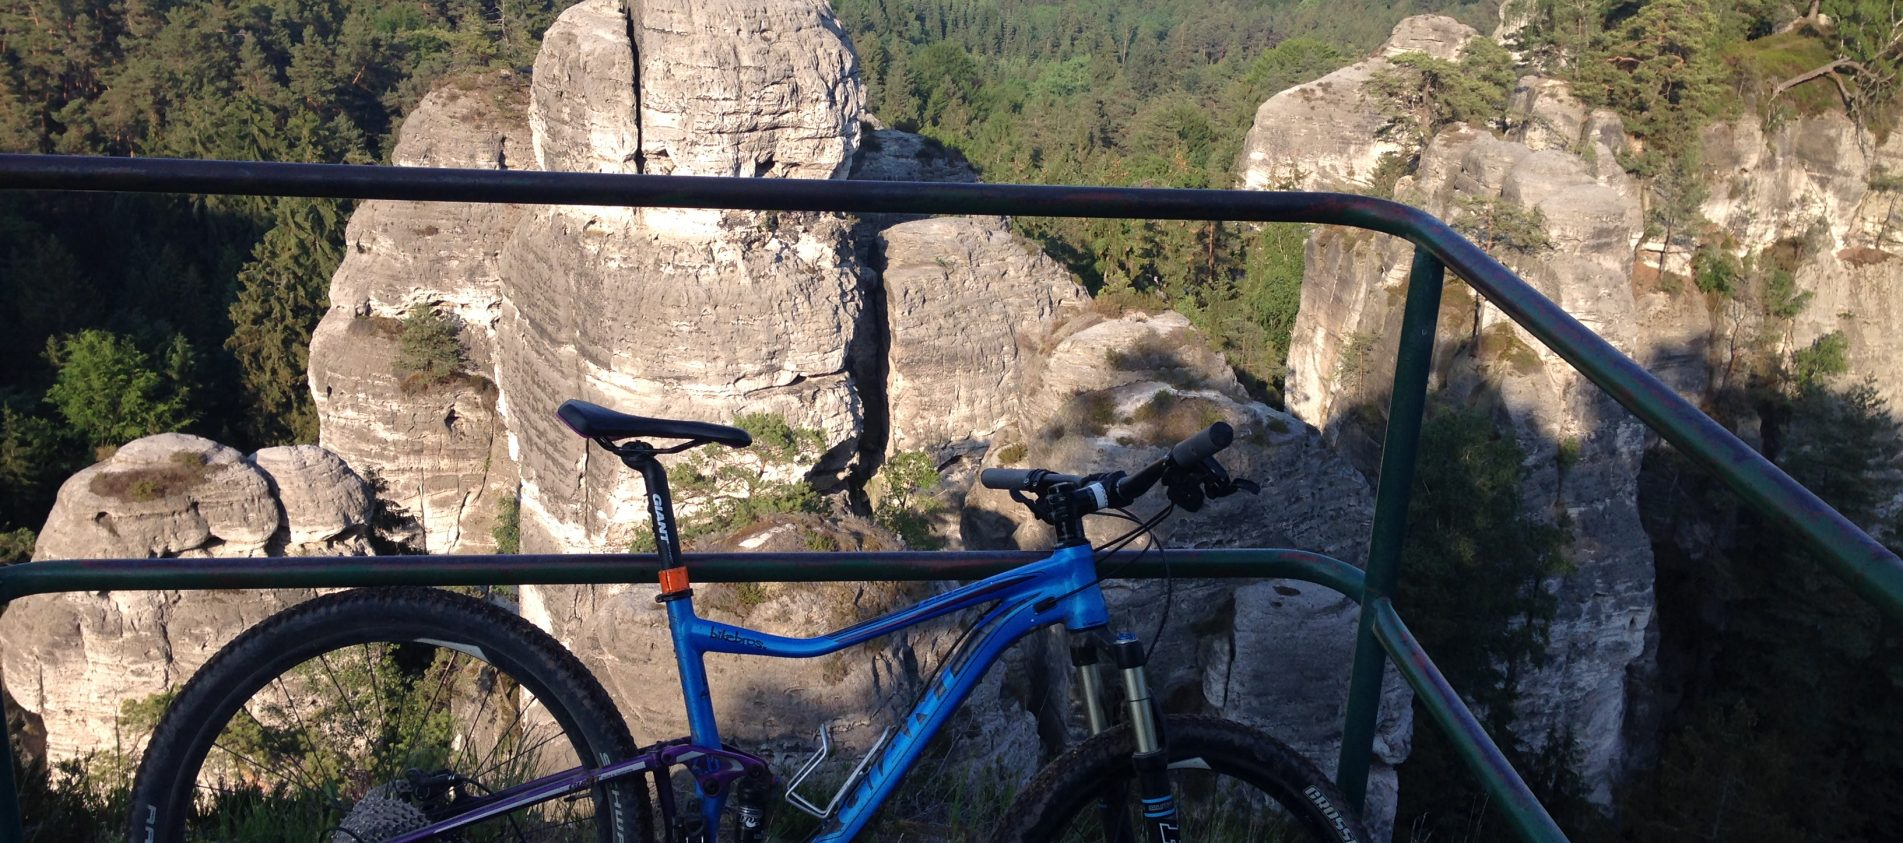 Bohemian Paradise cycling holiday - self guided in your own pace